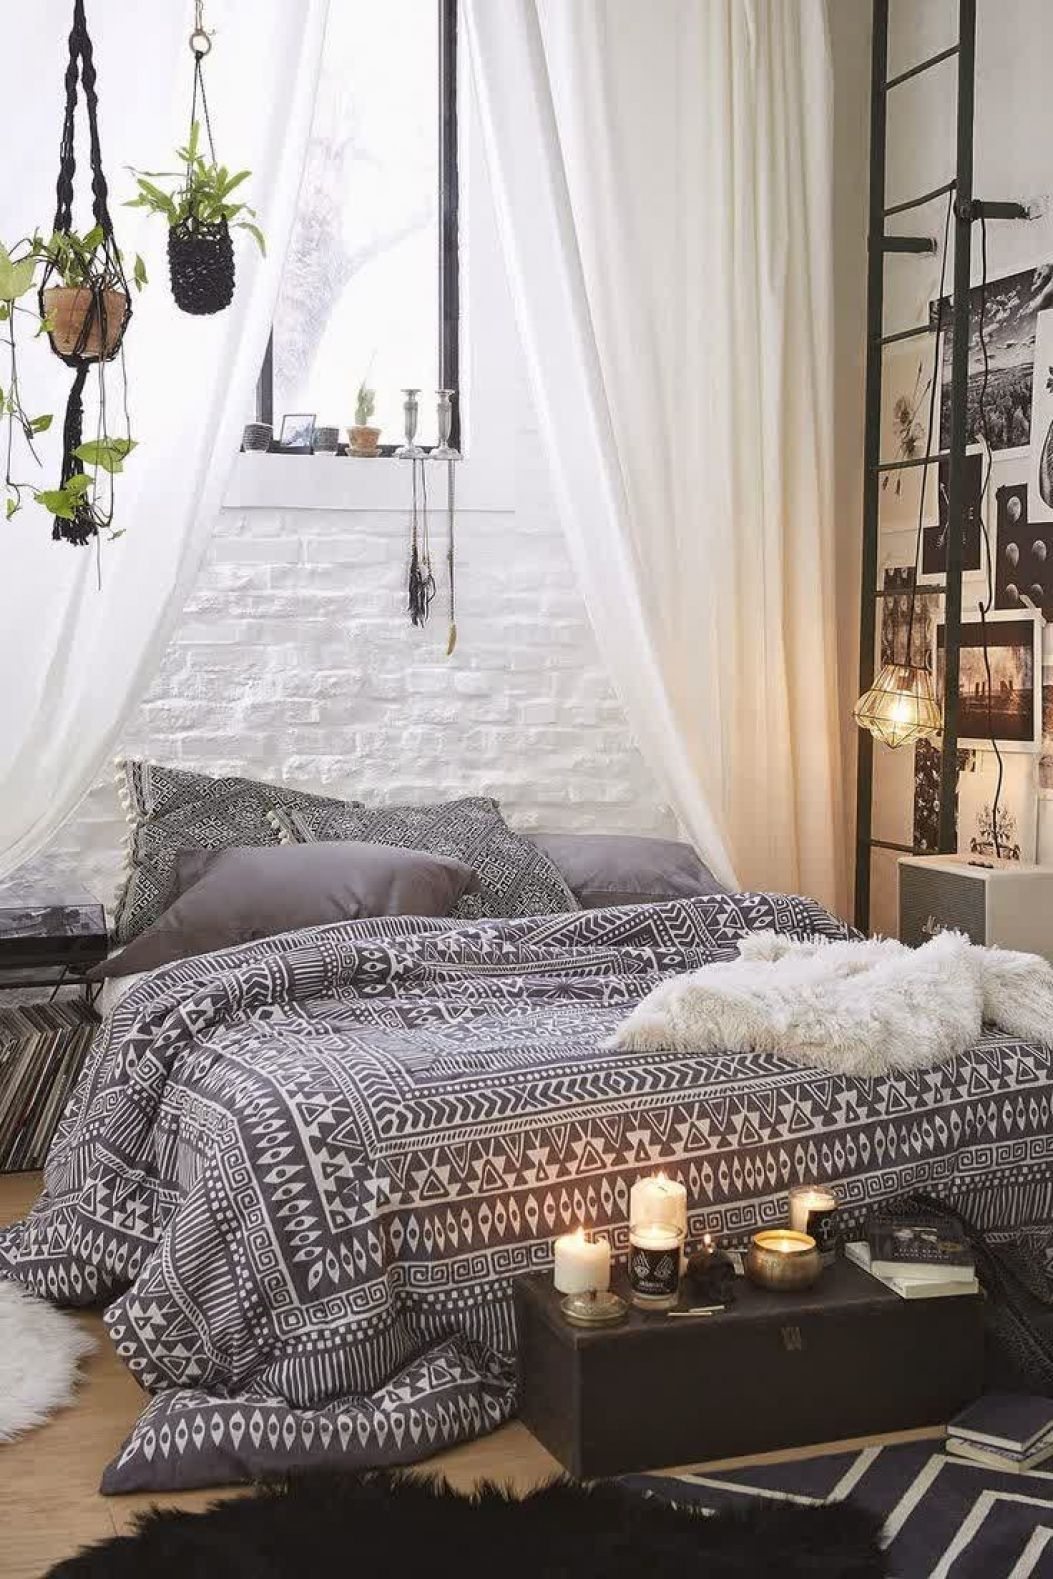 Master bedroom layout  Cool Bedroom Layout Ideas You Will Love  room inspo  Pinterest